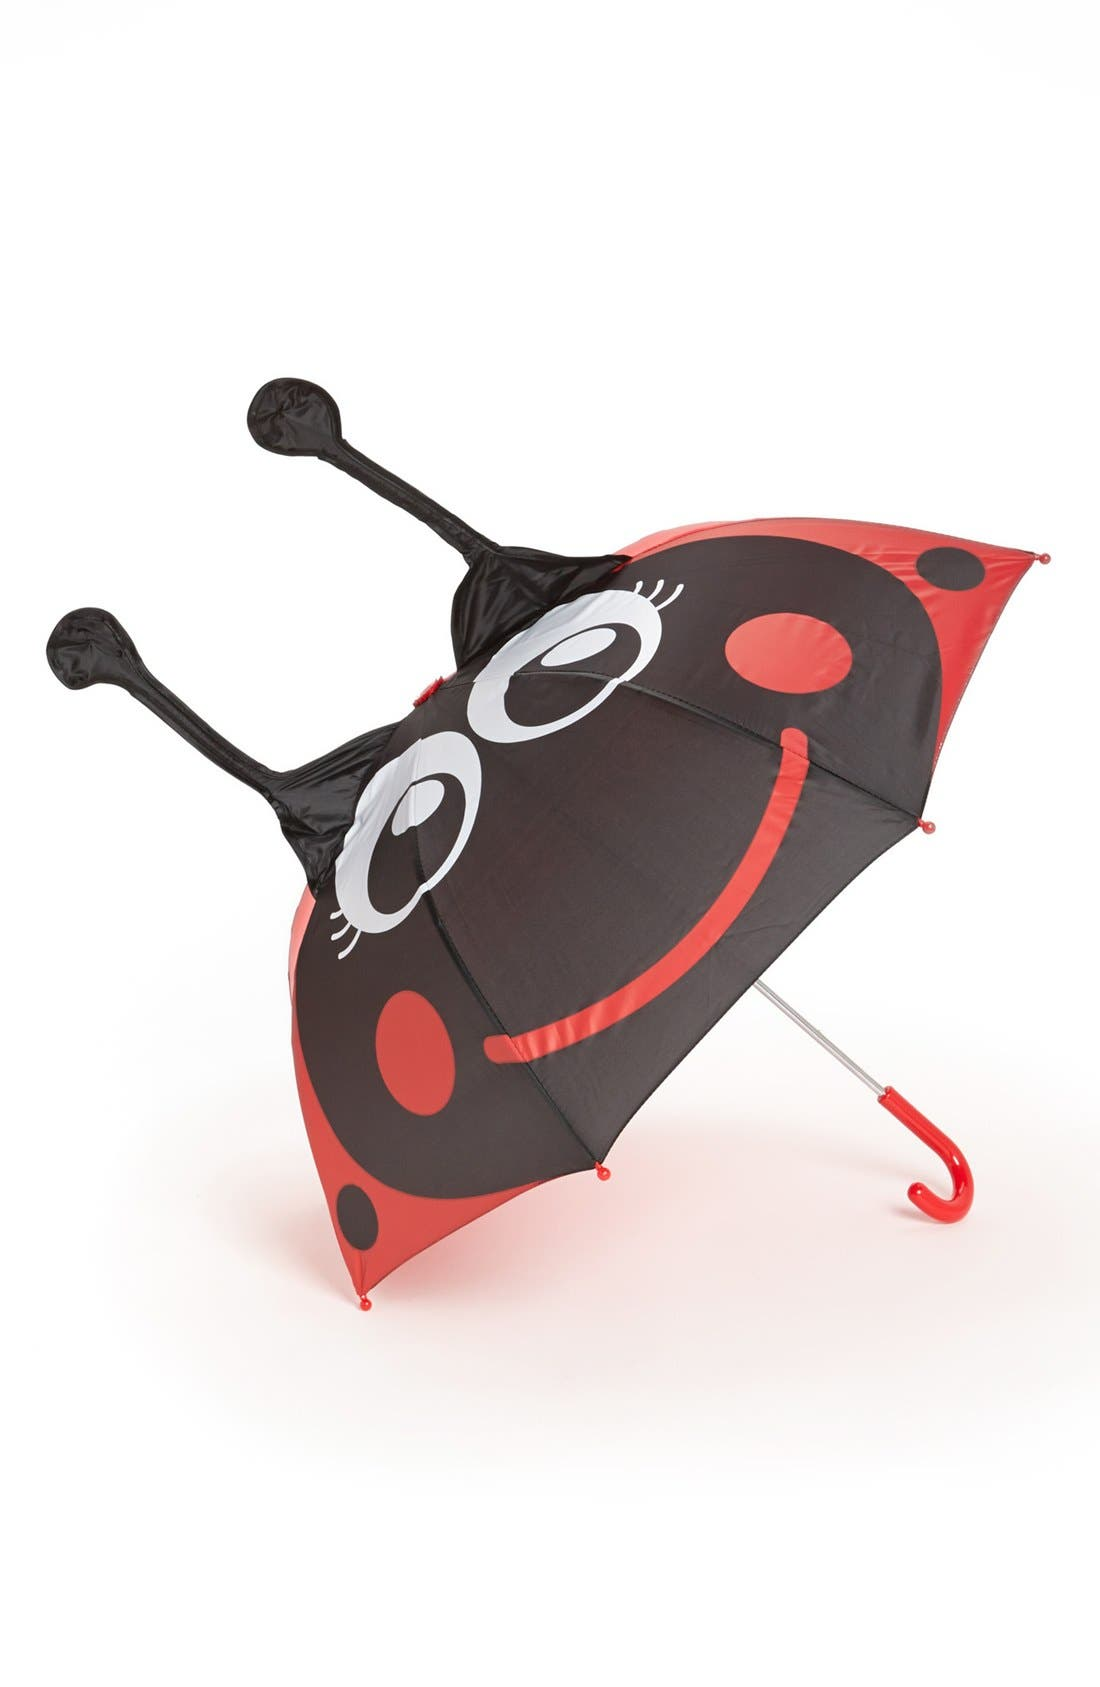 'Ladybug' Umbrella,                             Main thumbnail 1, color,                             610